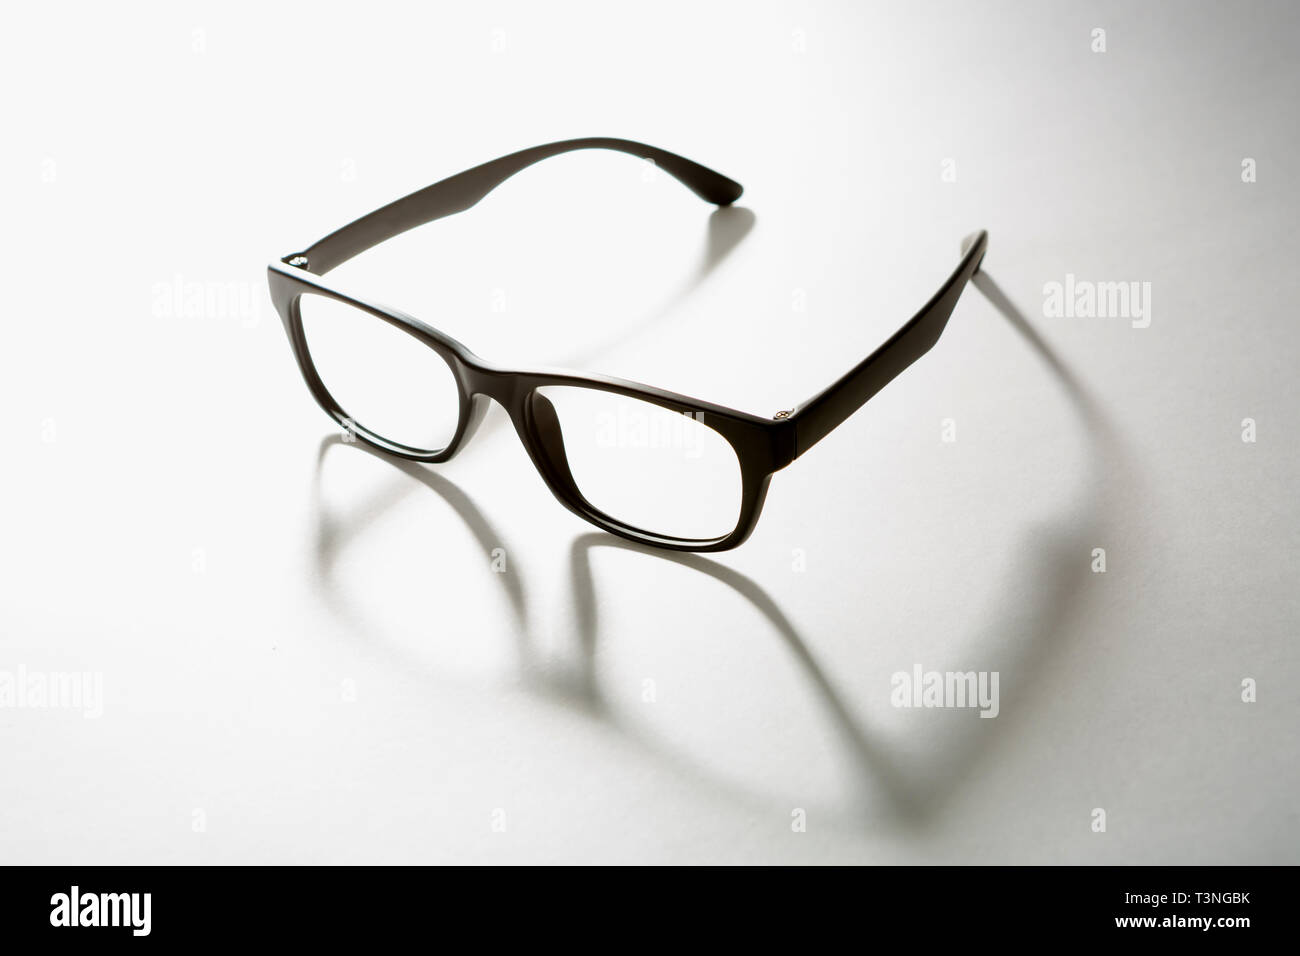 black rimmed glasses. the shadow of one's glasses. - Stock Image